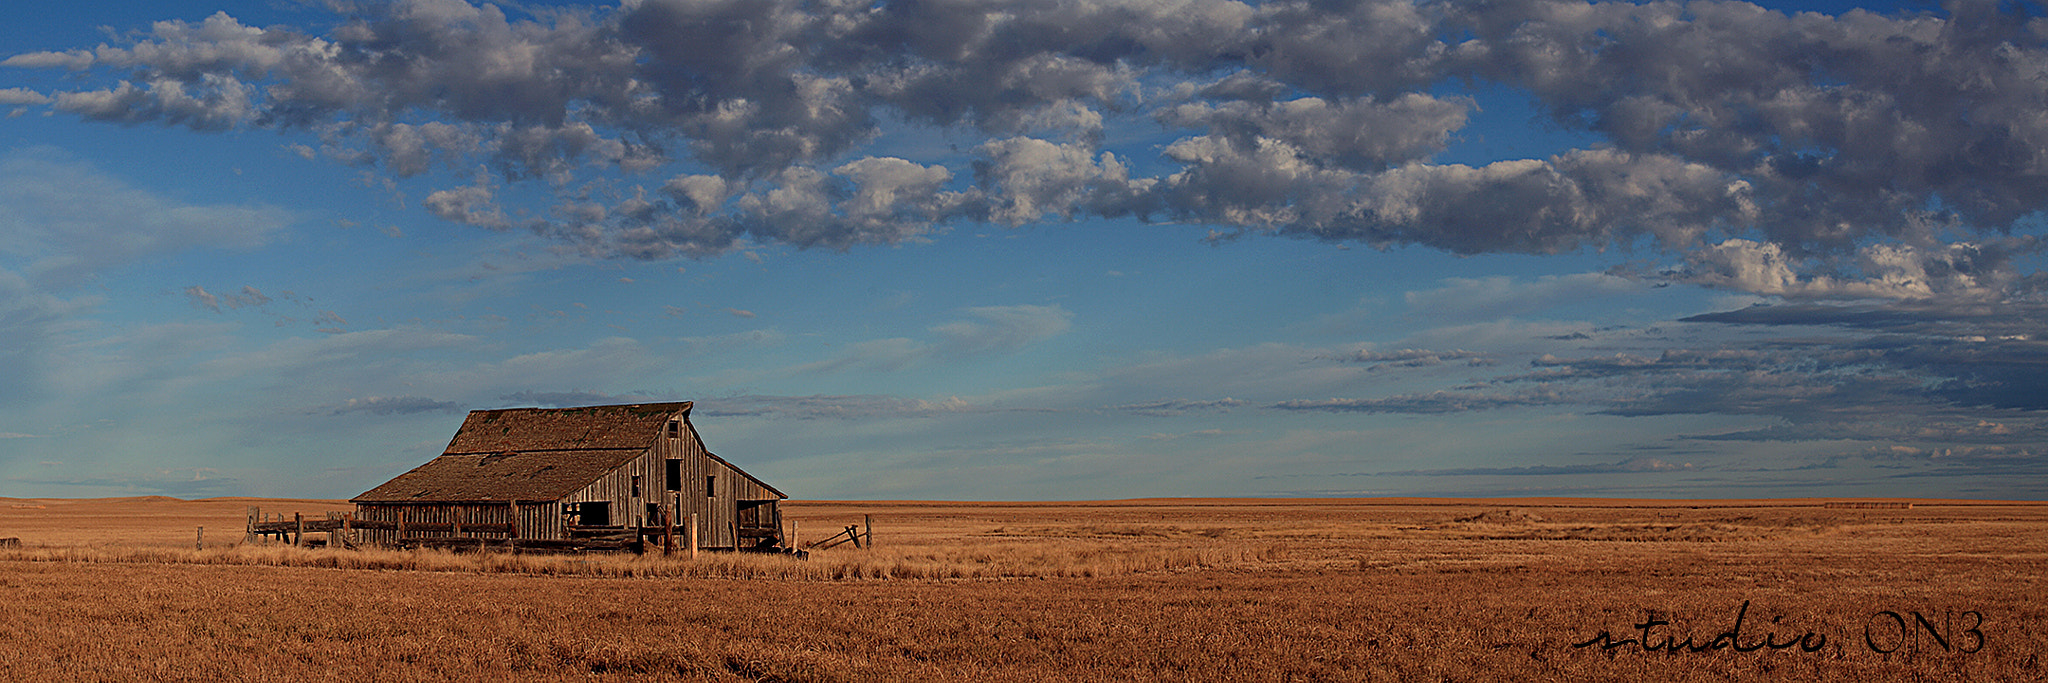 Photograph Bear Butte Barn and Prairie by Deborah Johnson on 500px